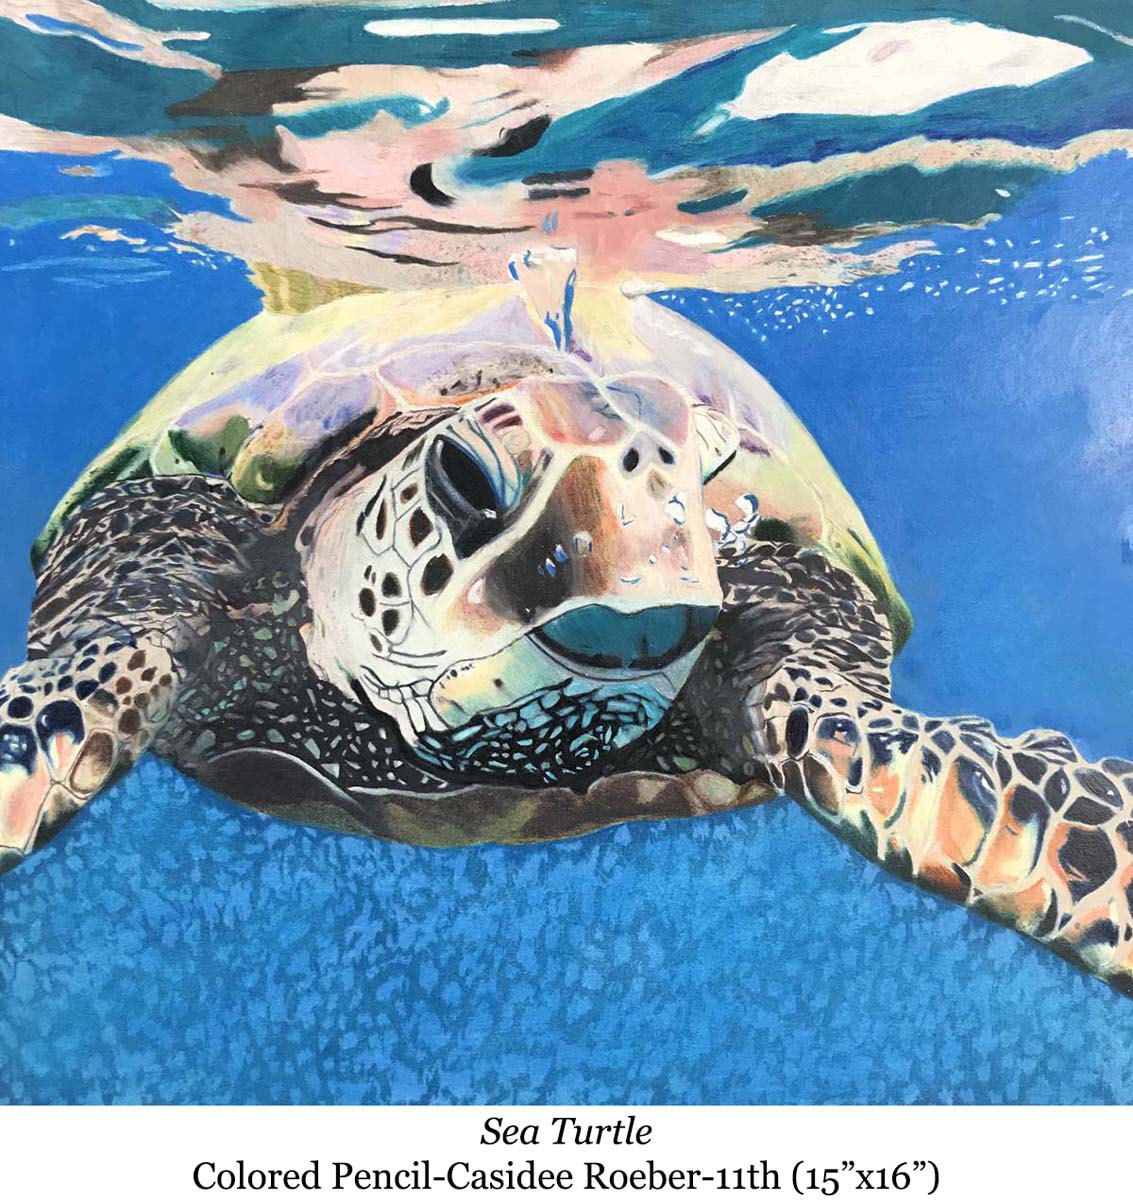 1587088184-sea_turtle-colored_pencil-casidee_roeber-11th__15_x16__